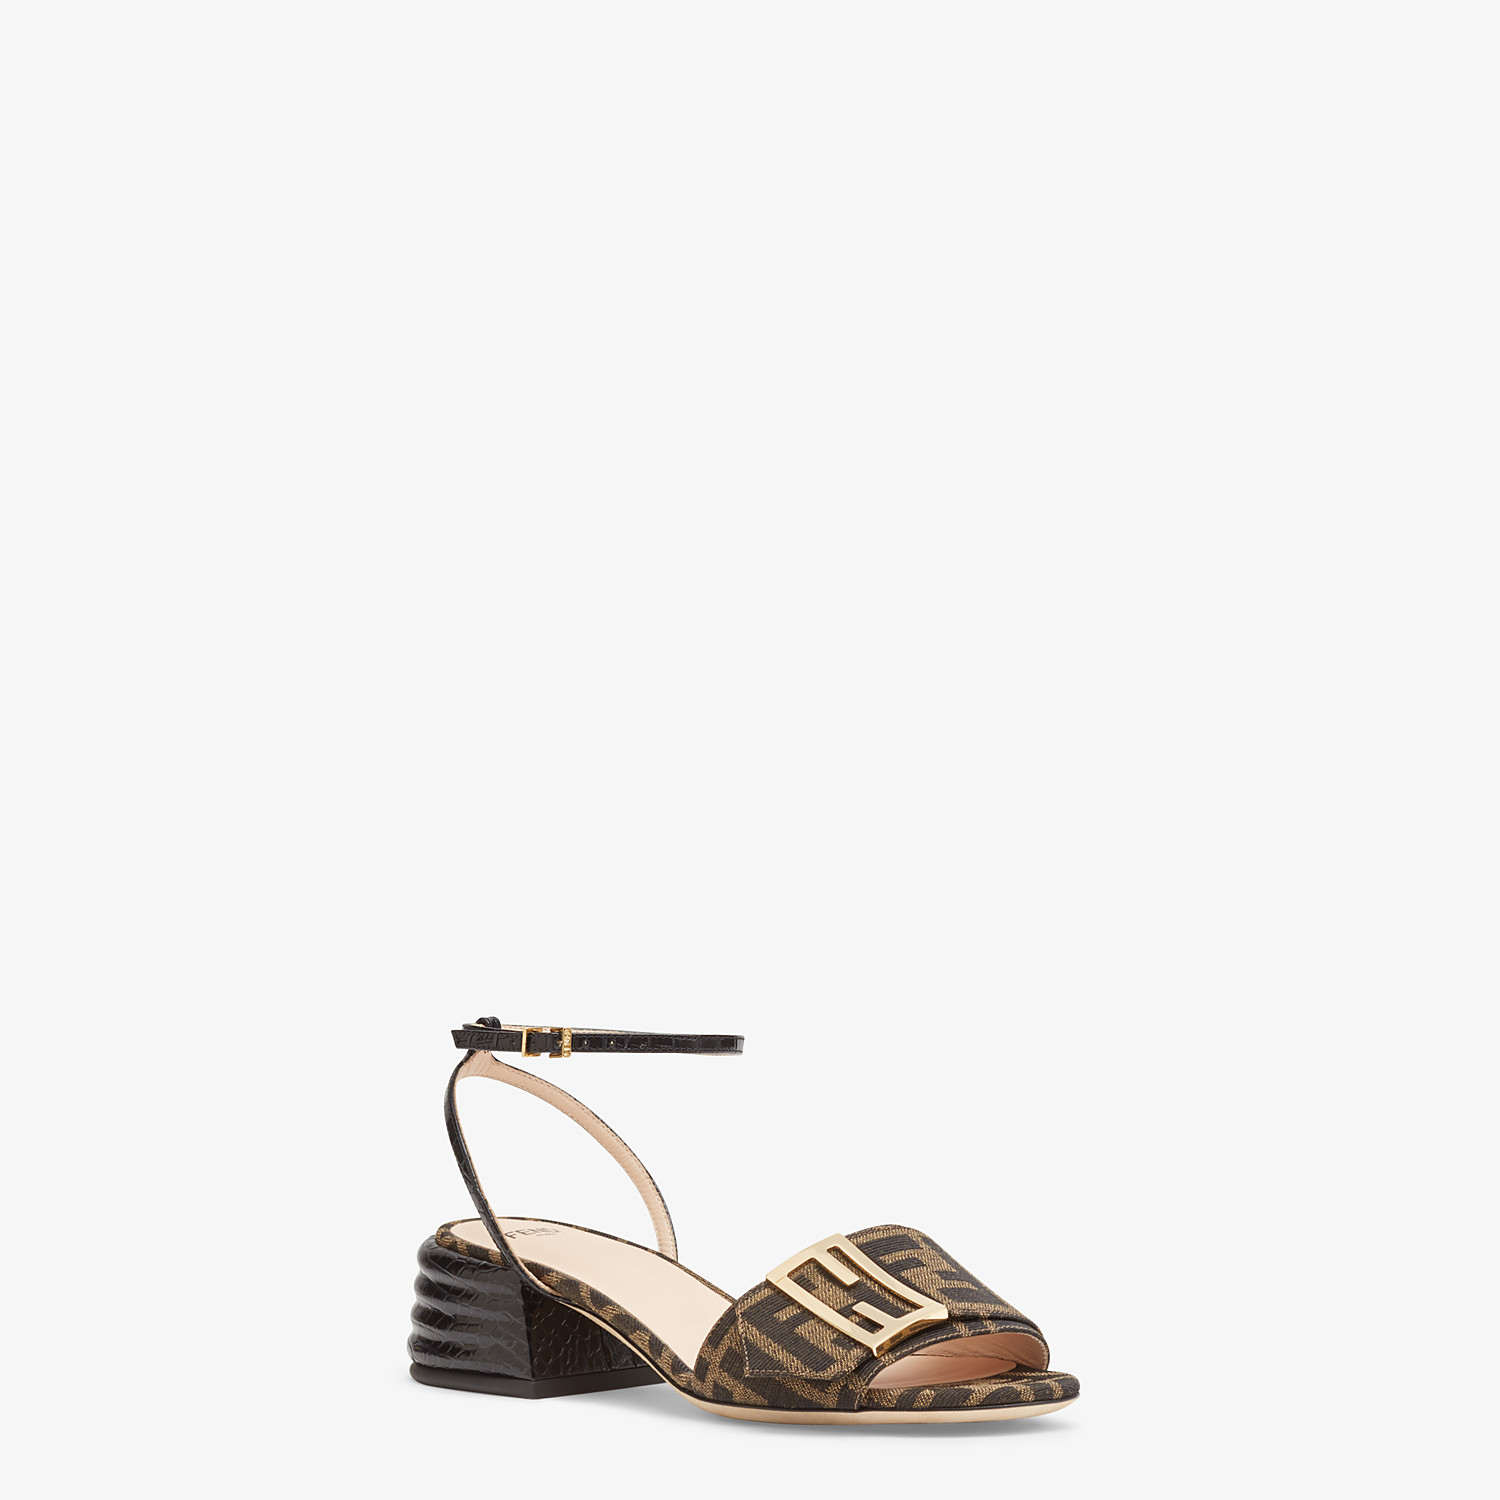 FENDI SANDALS - Brown fabric sandals - view 2 detail